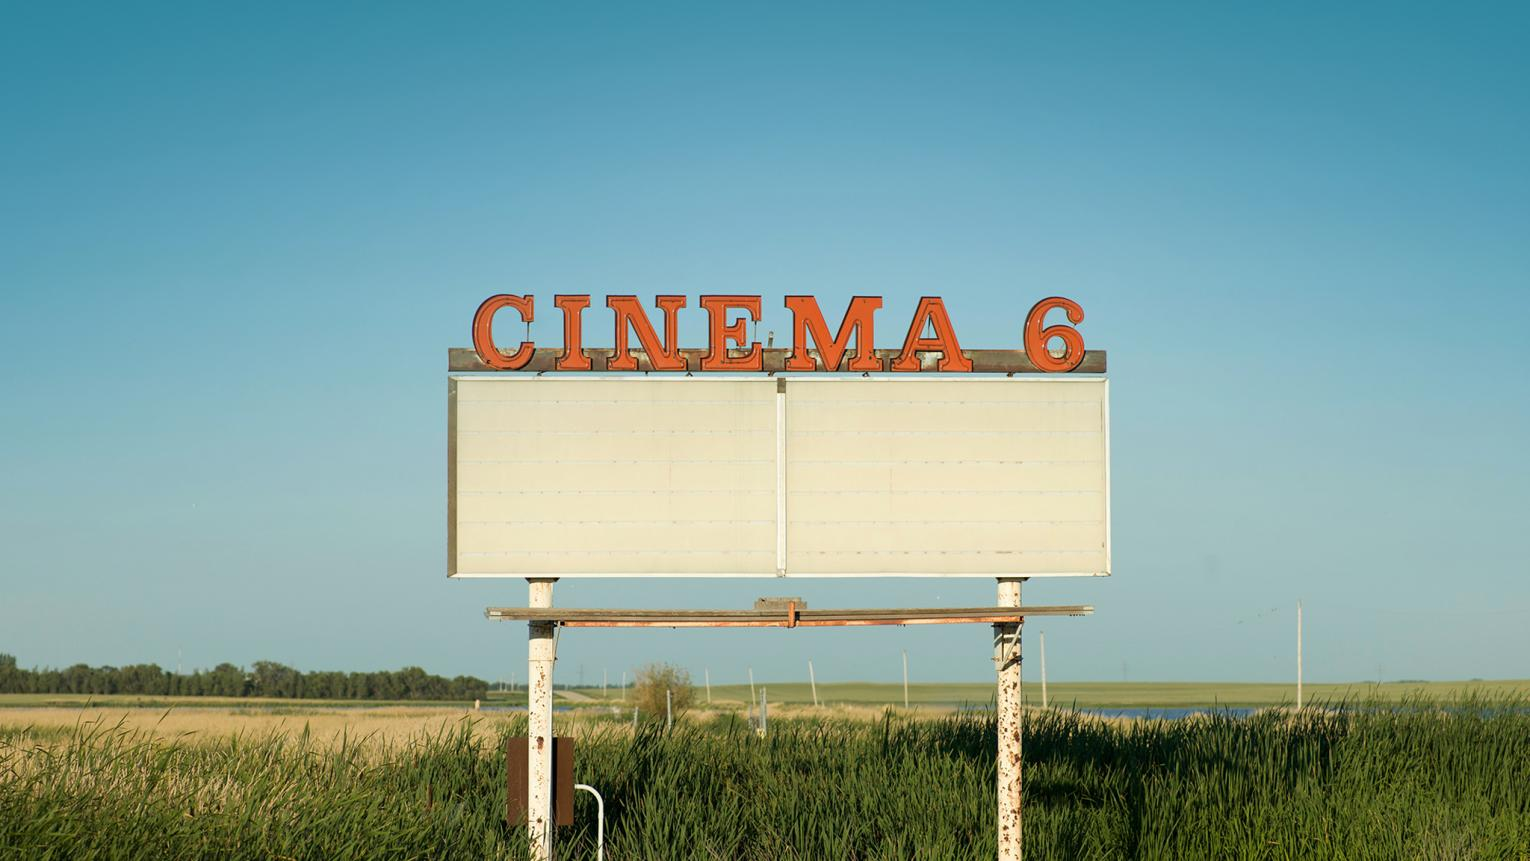 An orange cinema sign stands out against a blue sky.